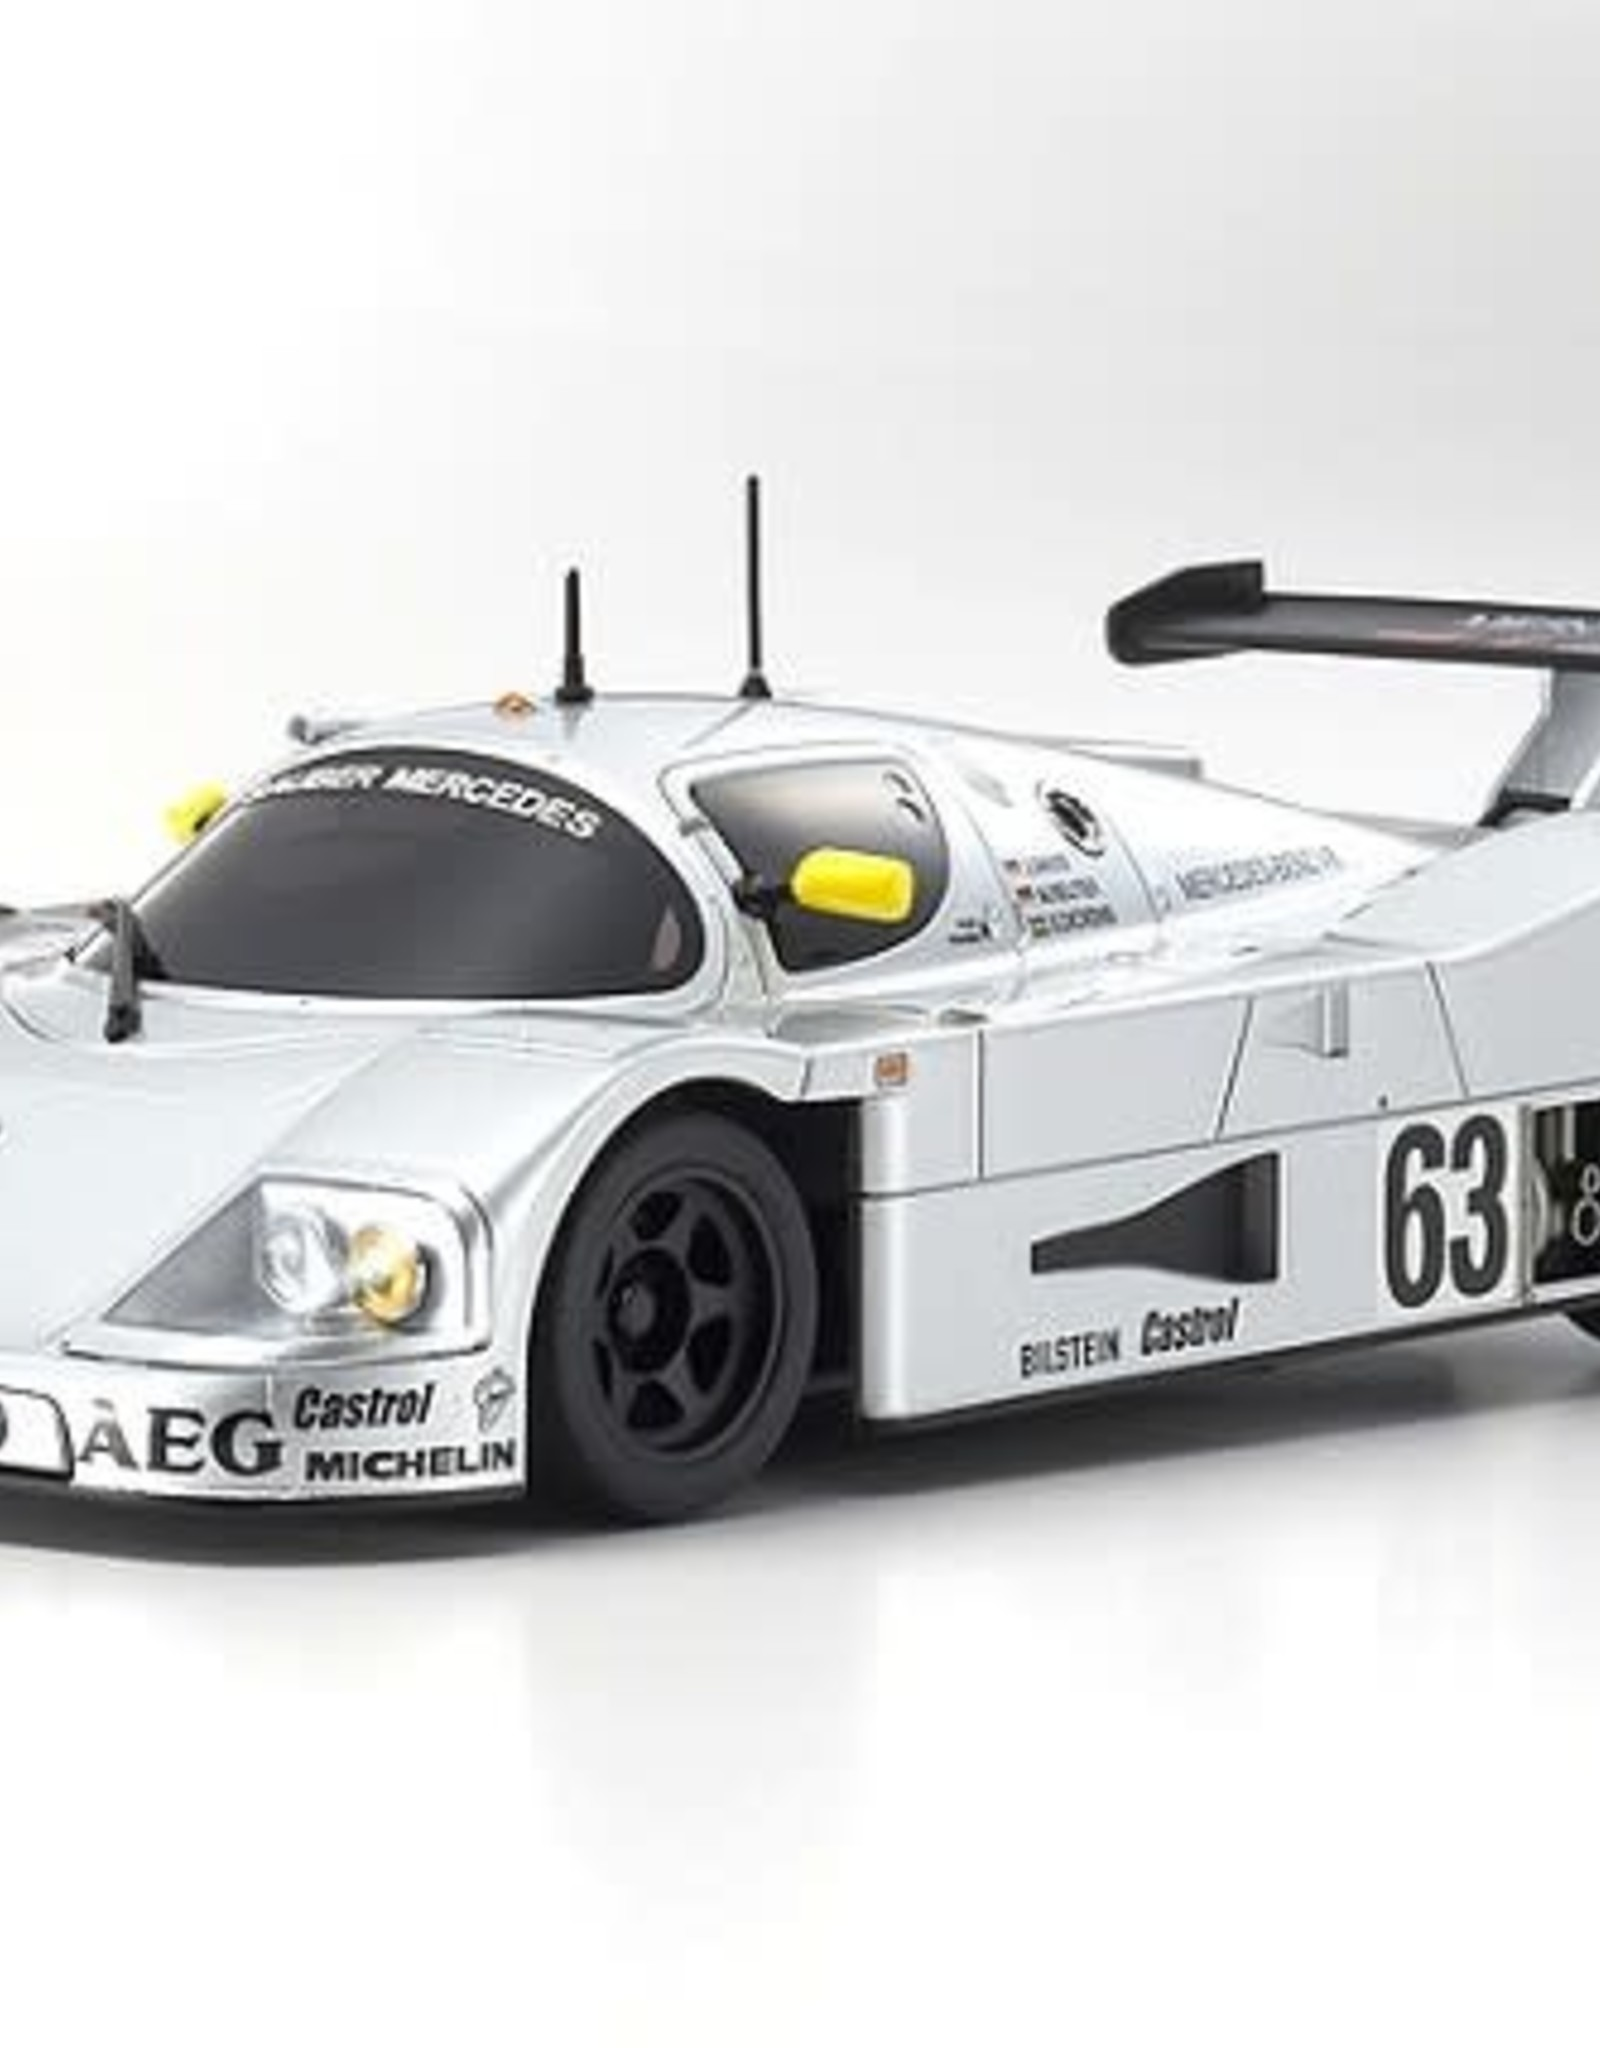 KYOSHO KYO32327S-B MINI-Z RWD Sauber-Mercedes C9 No. 63 LM 1989 MR-03 Readyset